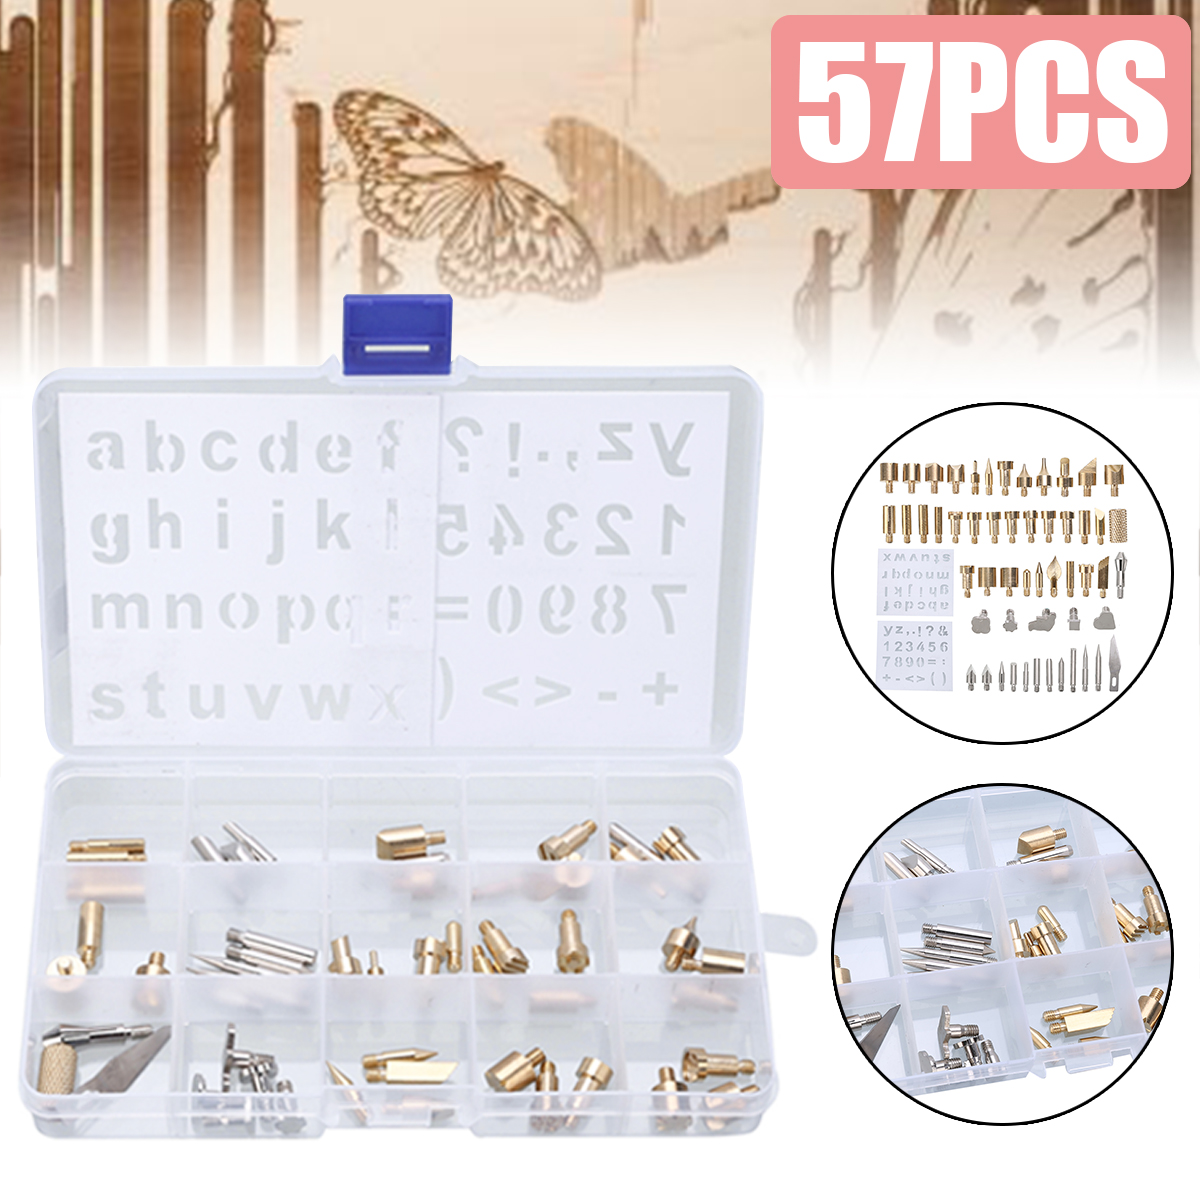 57pcs Electric Soldering Iron Kit Wood Burning Pen Tip Pyrography Craft Tool Engraver Set For Woodworking Soldering